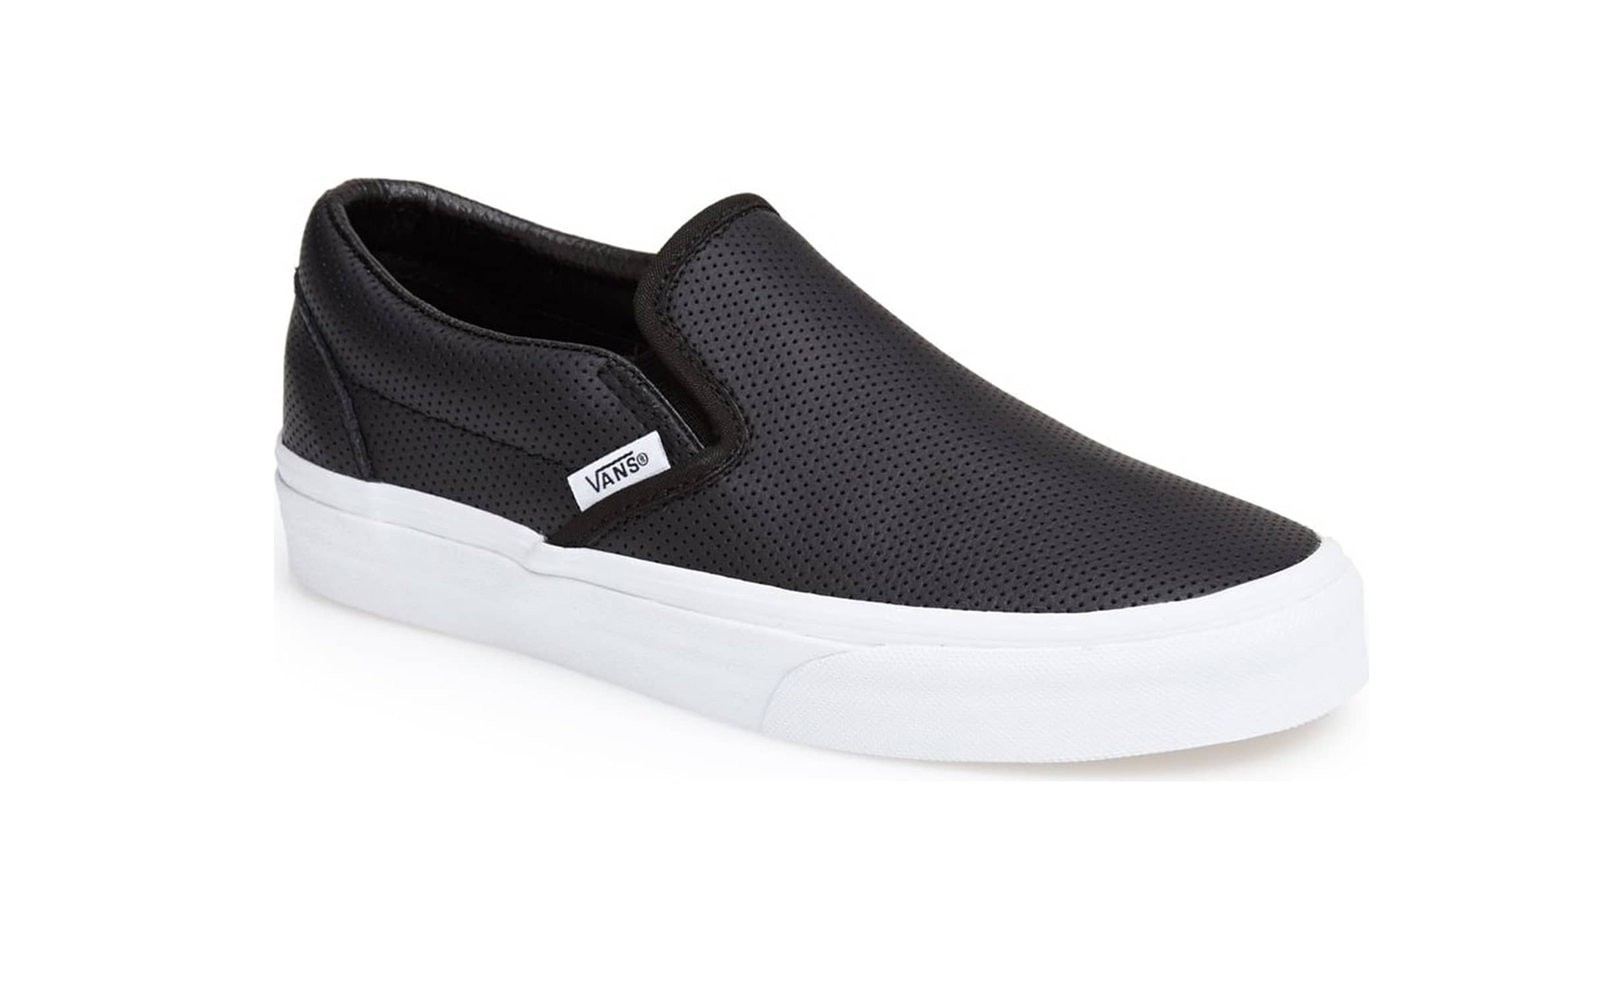 Travel+Leisure Ed's Comfortable Travel Shoes